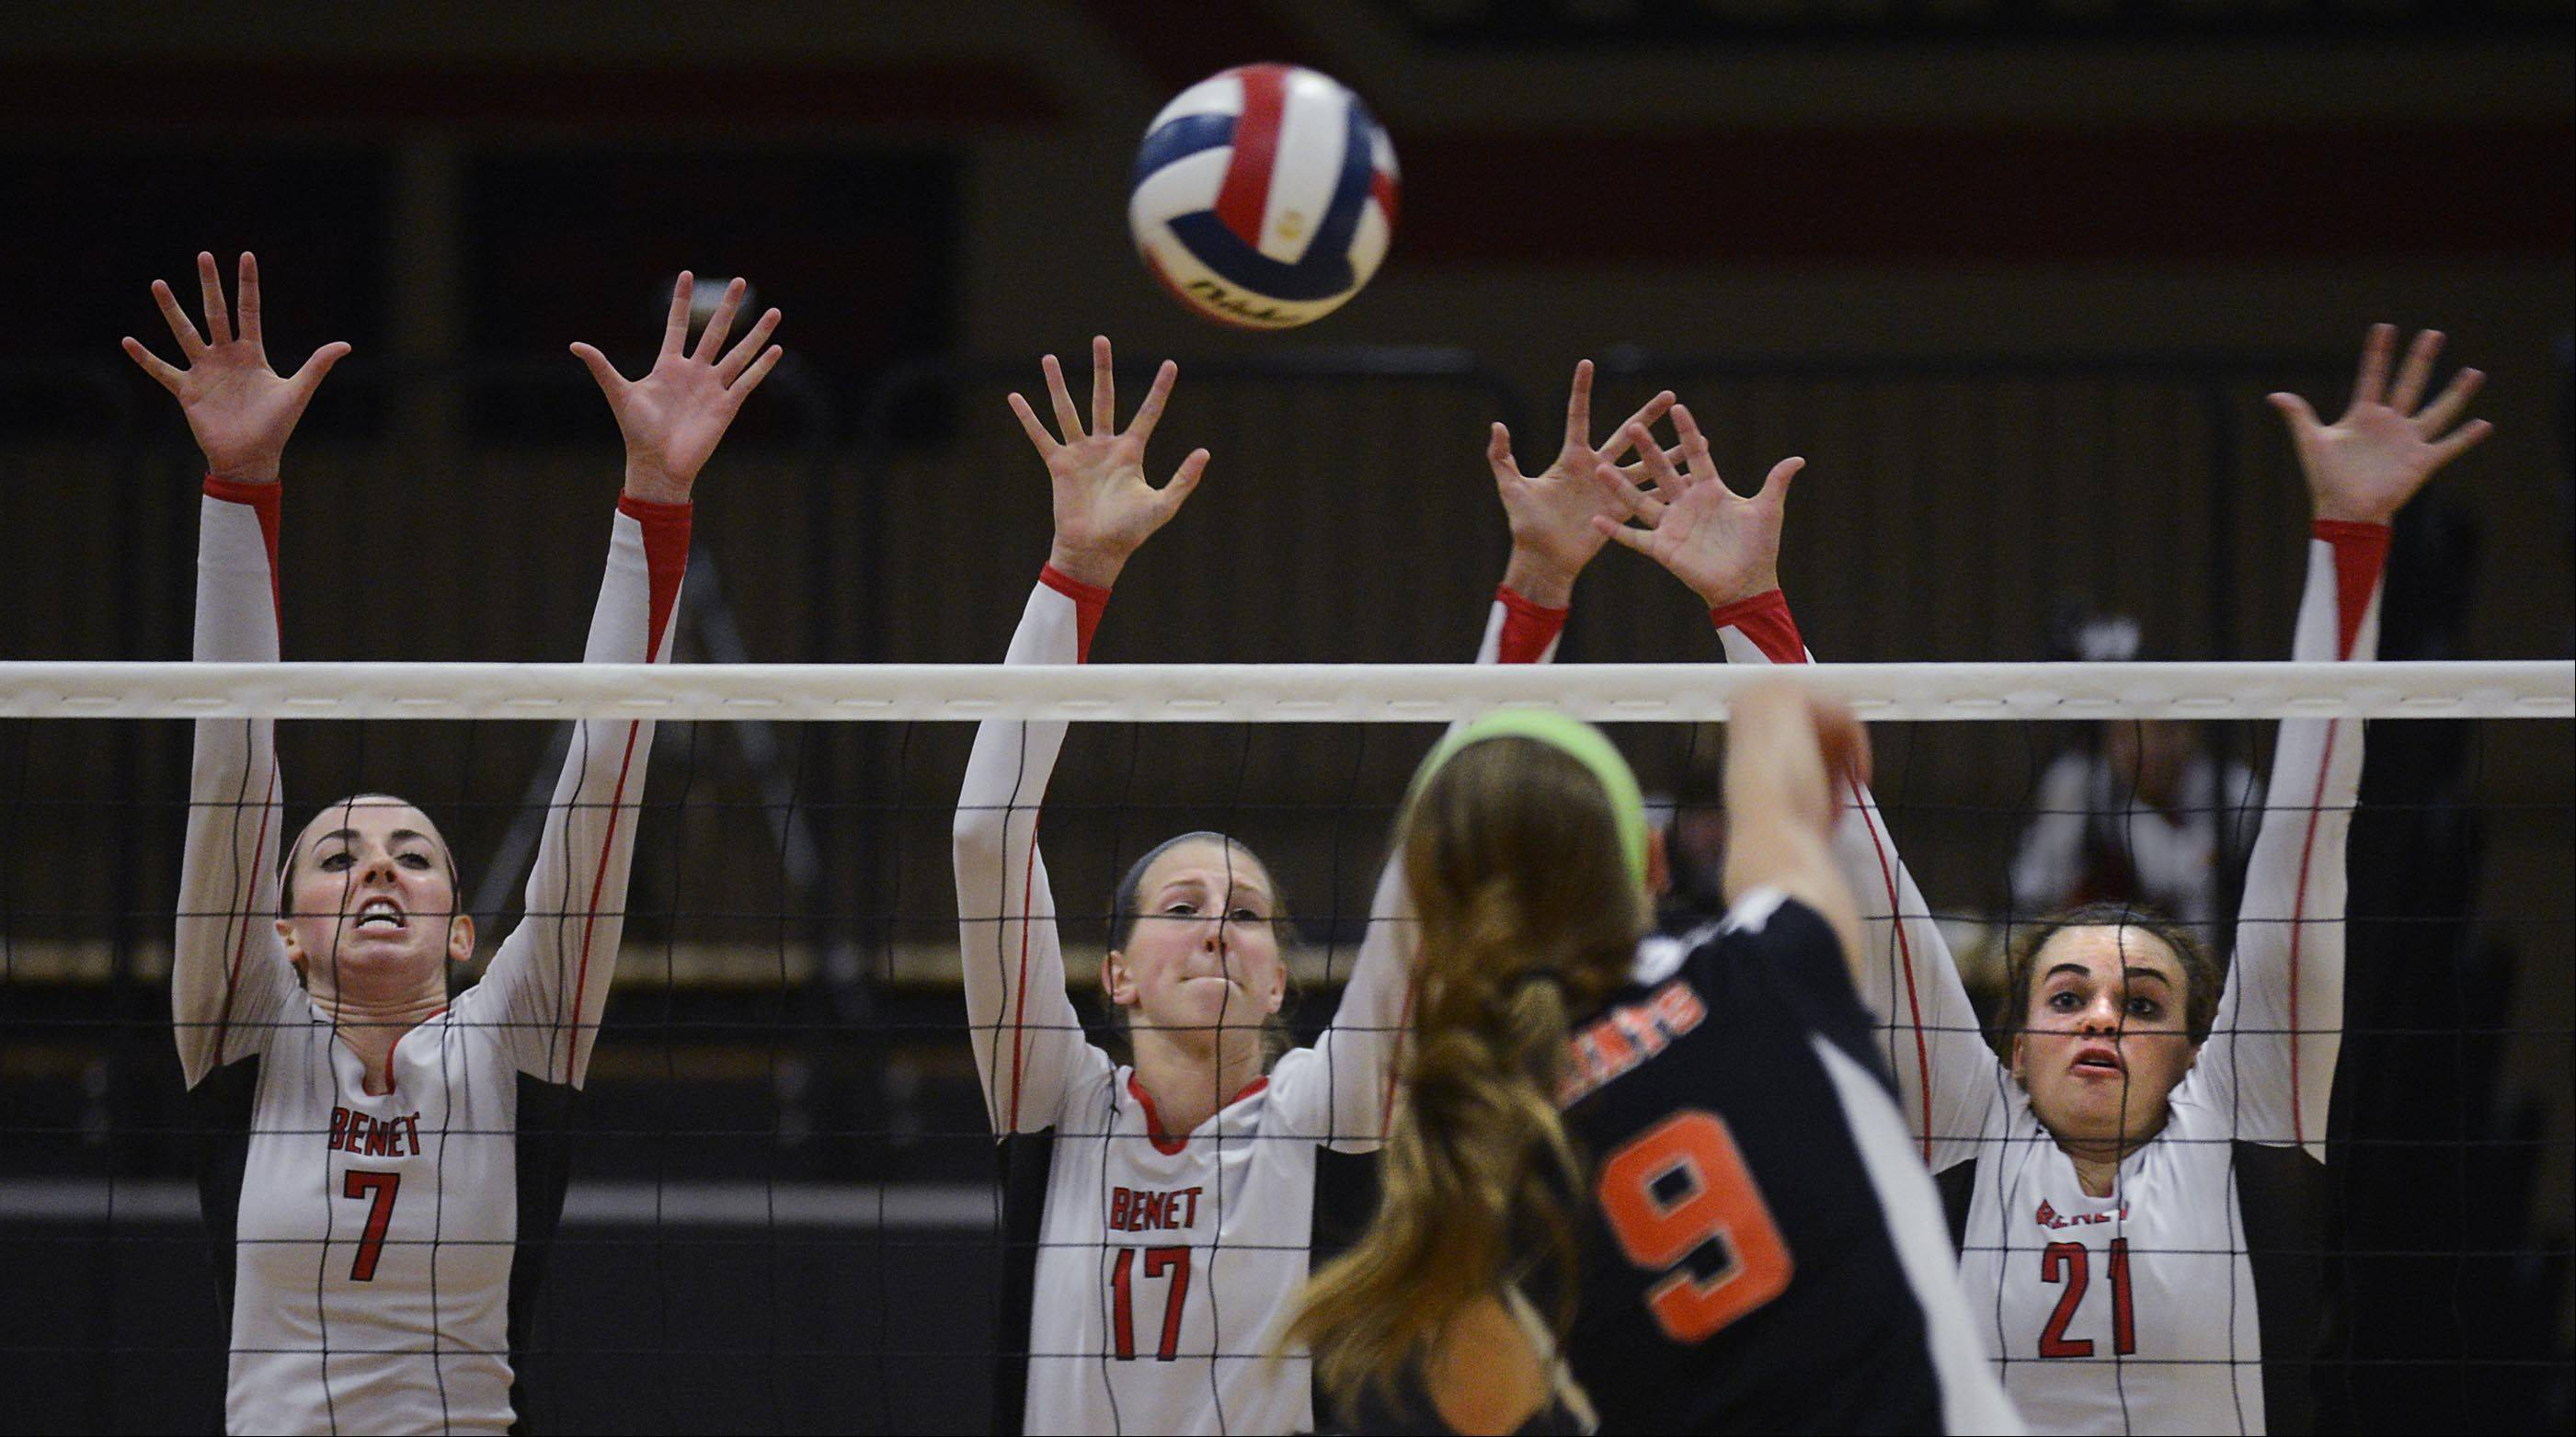 St. Charles East's Megan Schildmeyer sends a shot toward the triple defense of Benet Academy's Whitney Battoe, from left, Marija Cyvas and Ashley Hitchcock Wednesday in St. Charles.